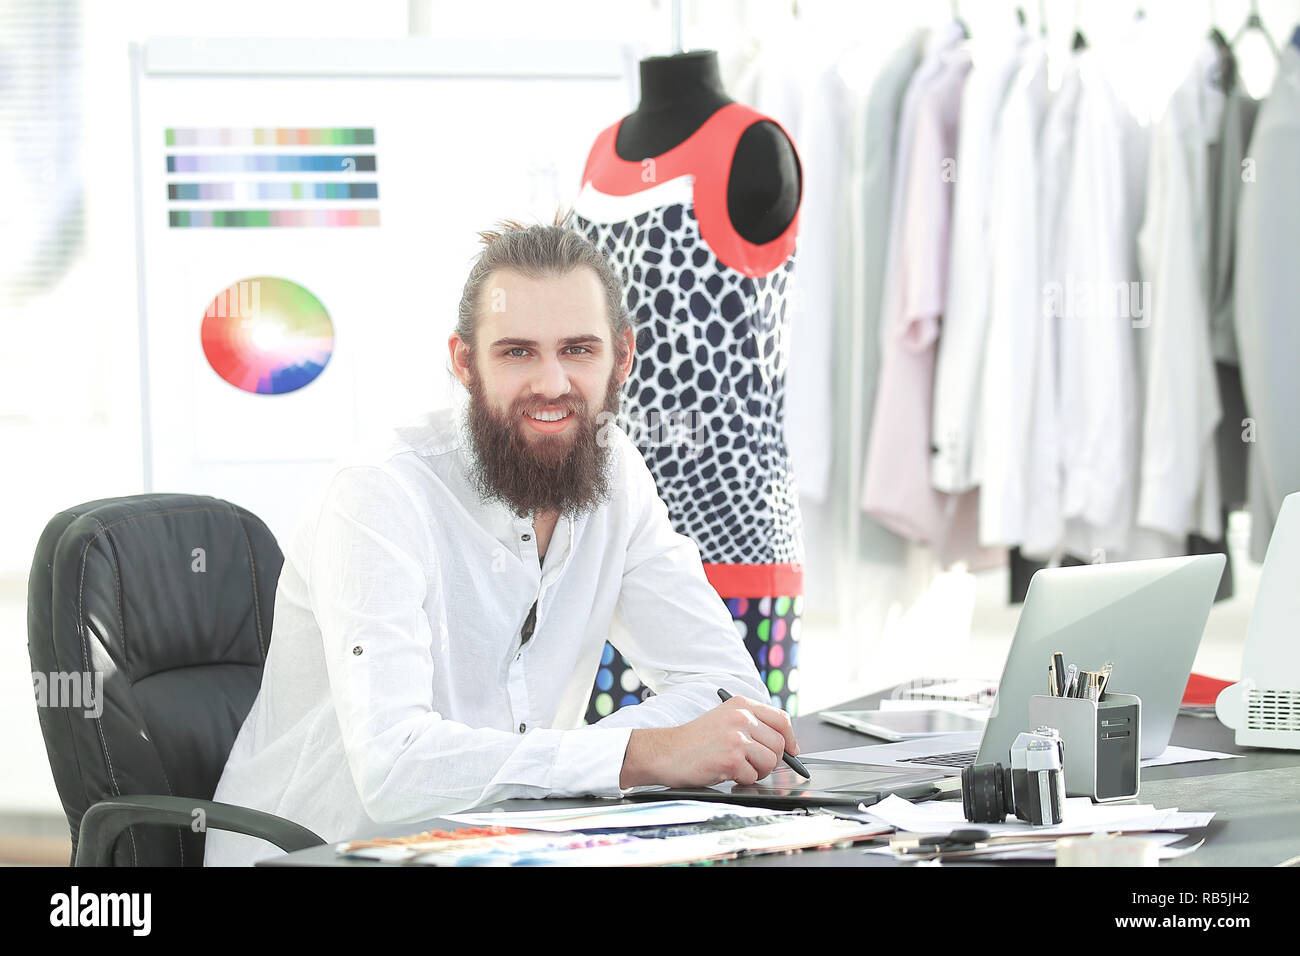 Fashion Designer Uses A Graphics Tablet To Create Sketches Of Clothes Stock Photo Alamy